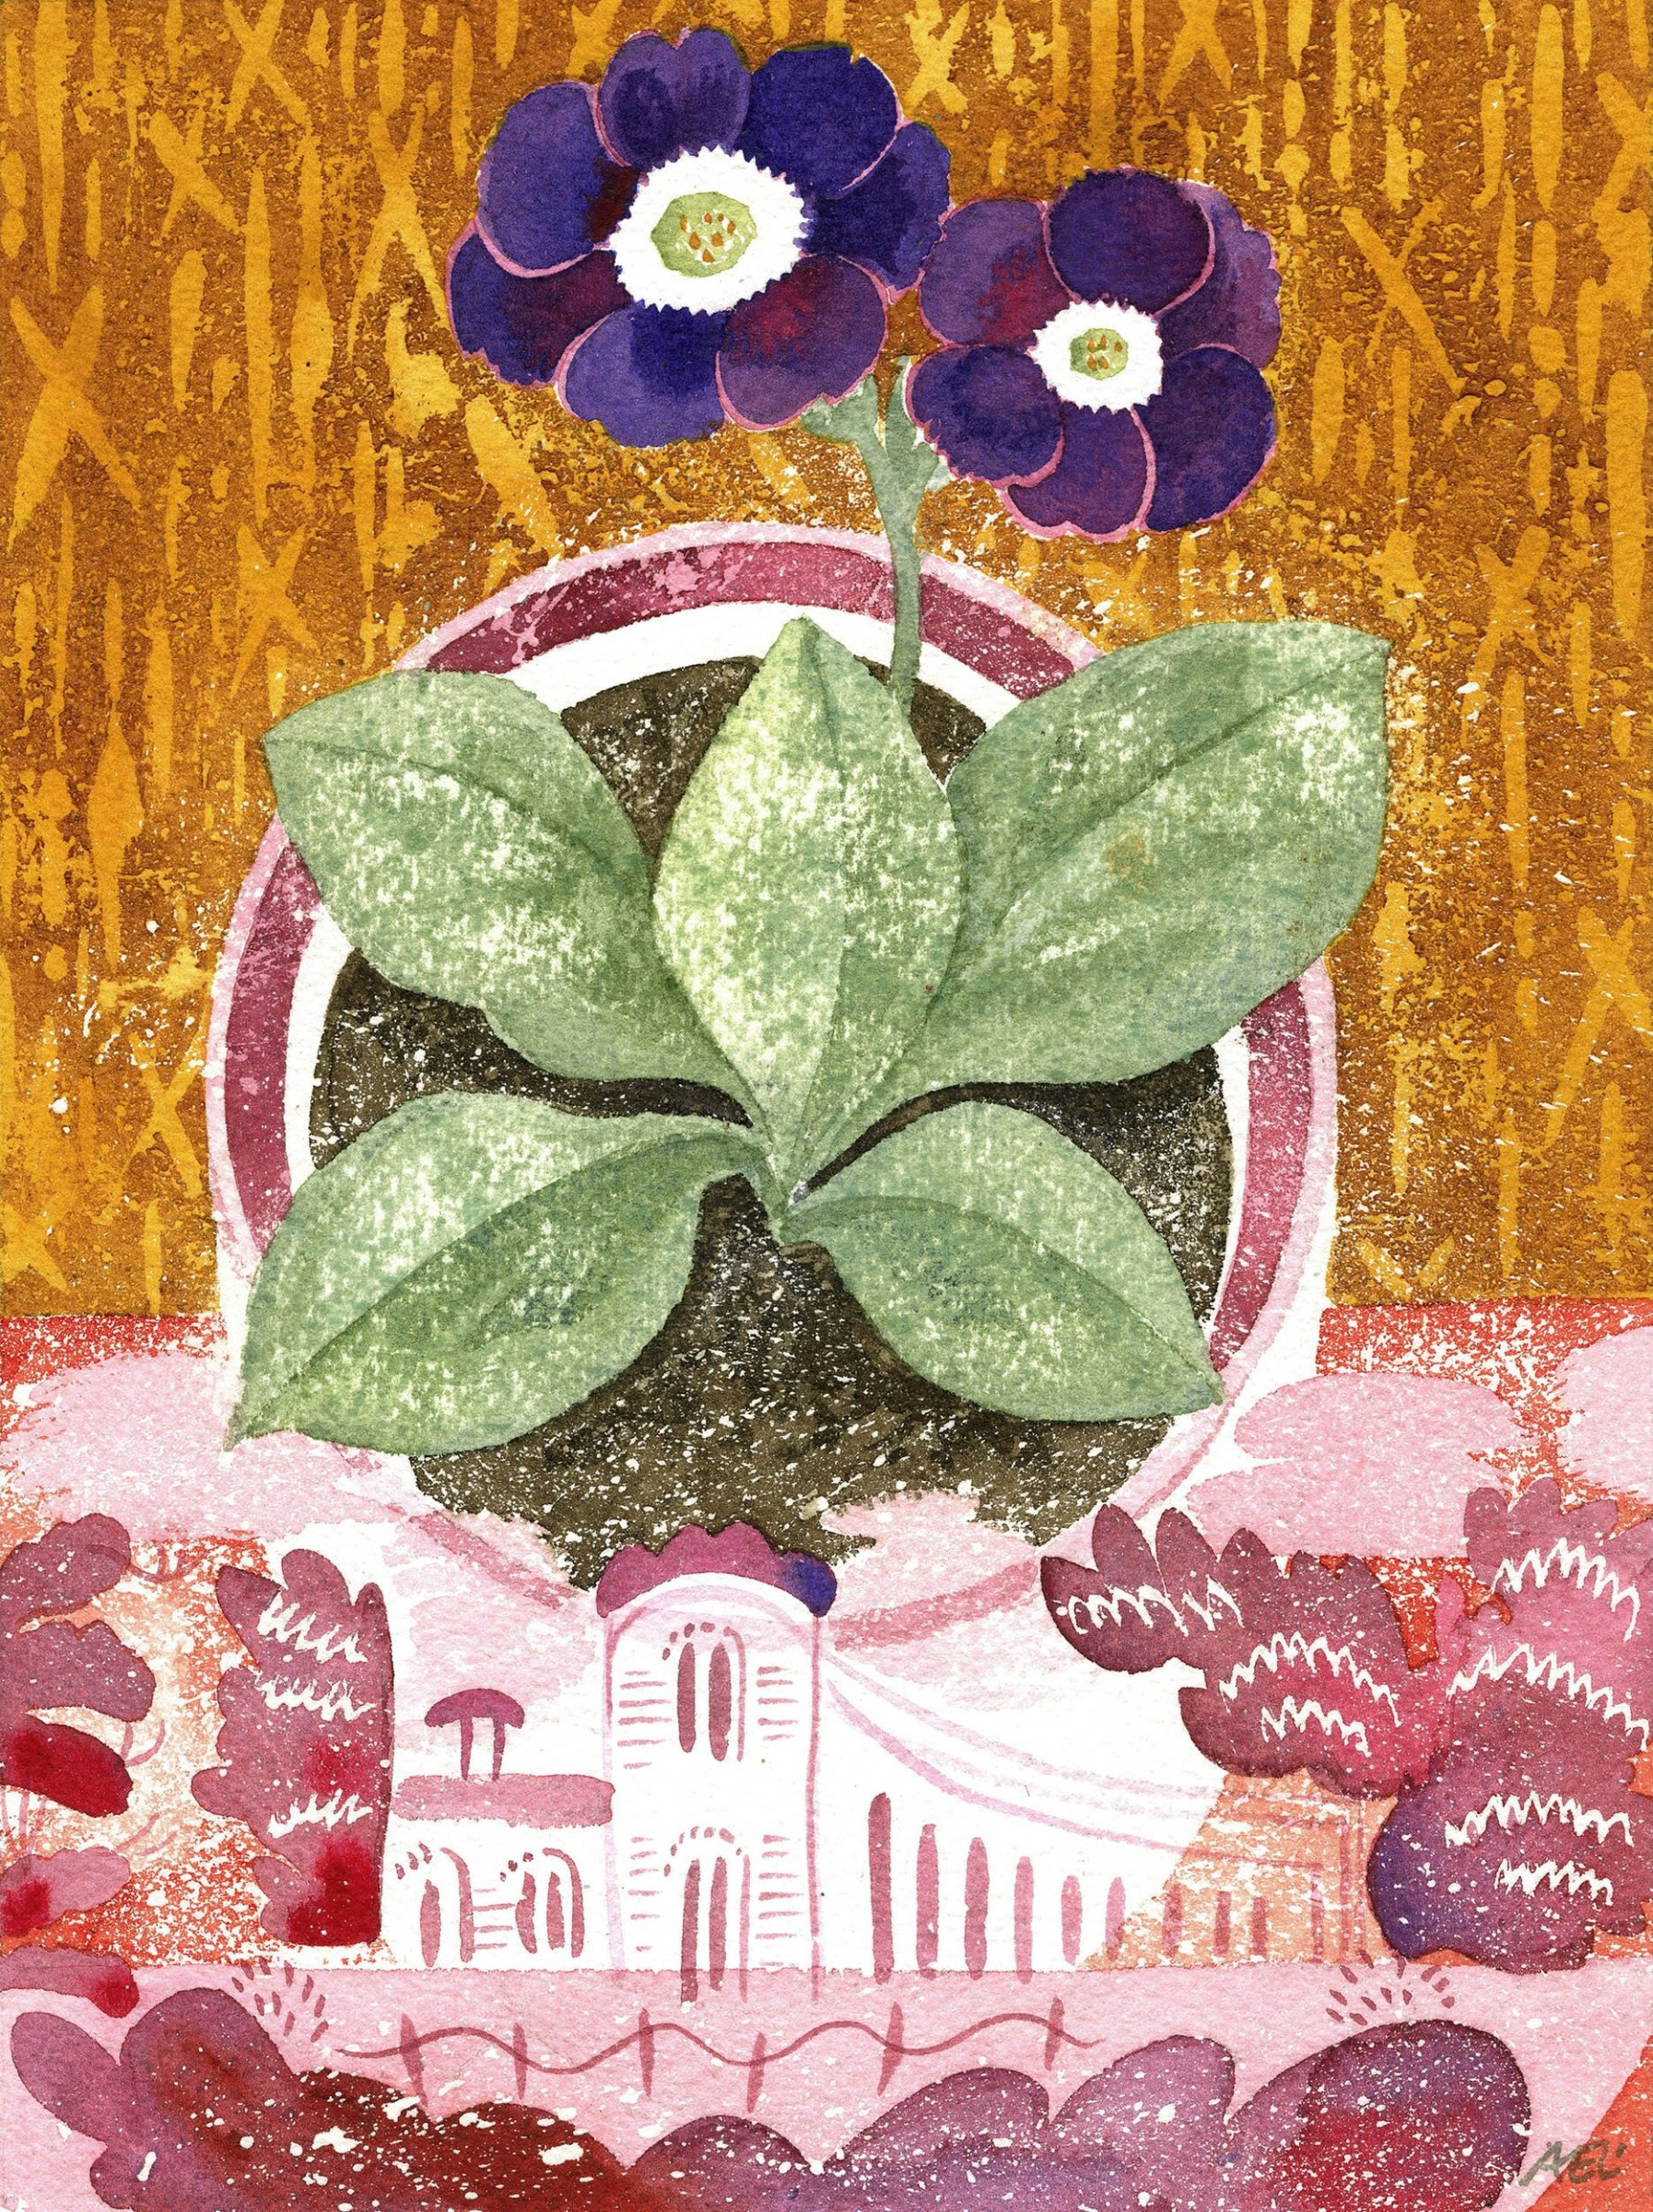 """<span class=""""link fancybox-details-link""""><a href=""""/artists/129-angie-lewin/works/12762-angie-lewin-auricula-faliraki-and-lustreware-landscape/"""">View Detail Page</a></span><div class=""""artist""""><span class=""""artist""""><strong>Angie Lewin</strong></span></div><div class=""""title""""><em>Auricula 'Faliraki' and Lustreware Landscape</em></div><div class=""""medium"""">watercolour</div><div class=""""dimensions"""">Frame: 37 x 31cm<br /> Artwork: 20 x 15cm</div><div class=""""price"""">£620.00</div>"""